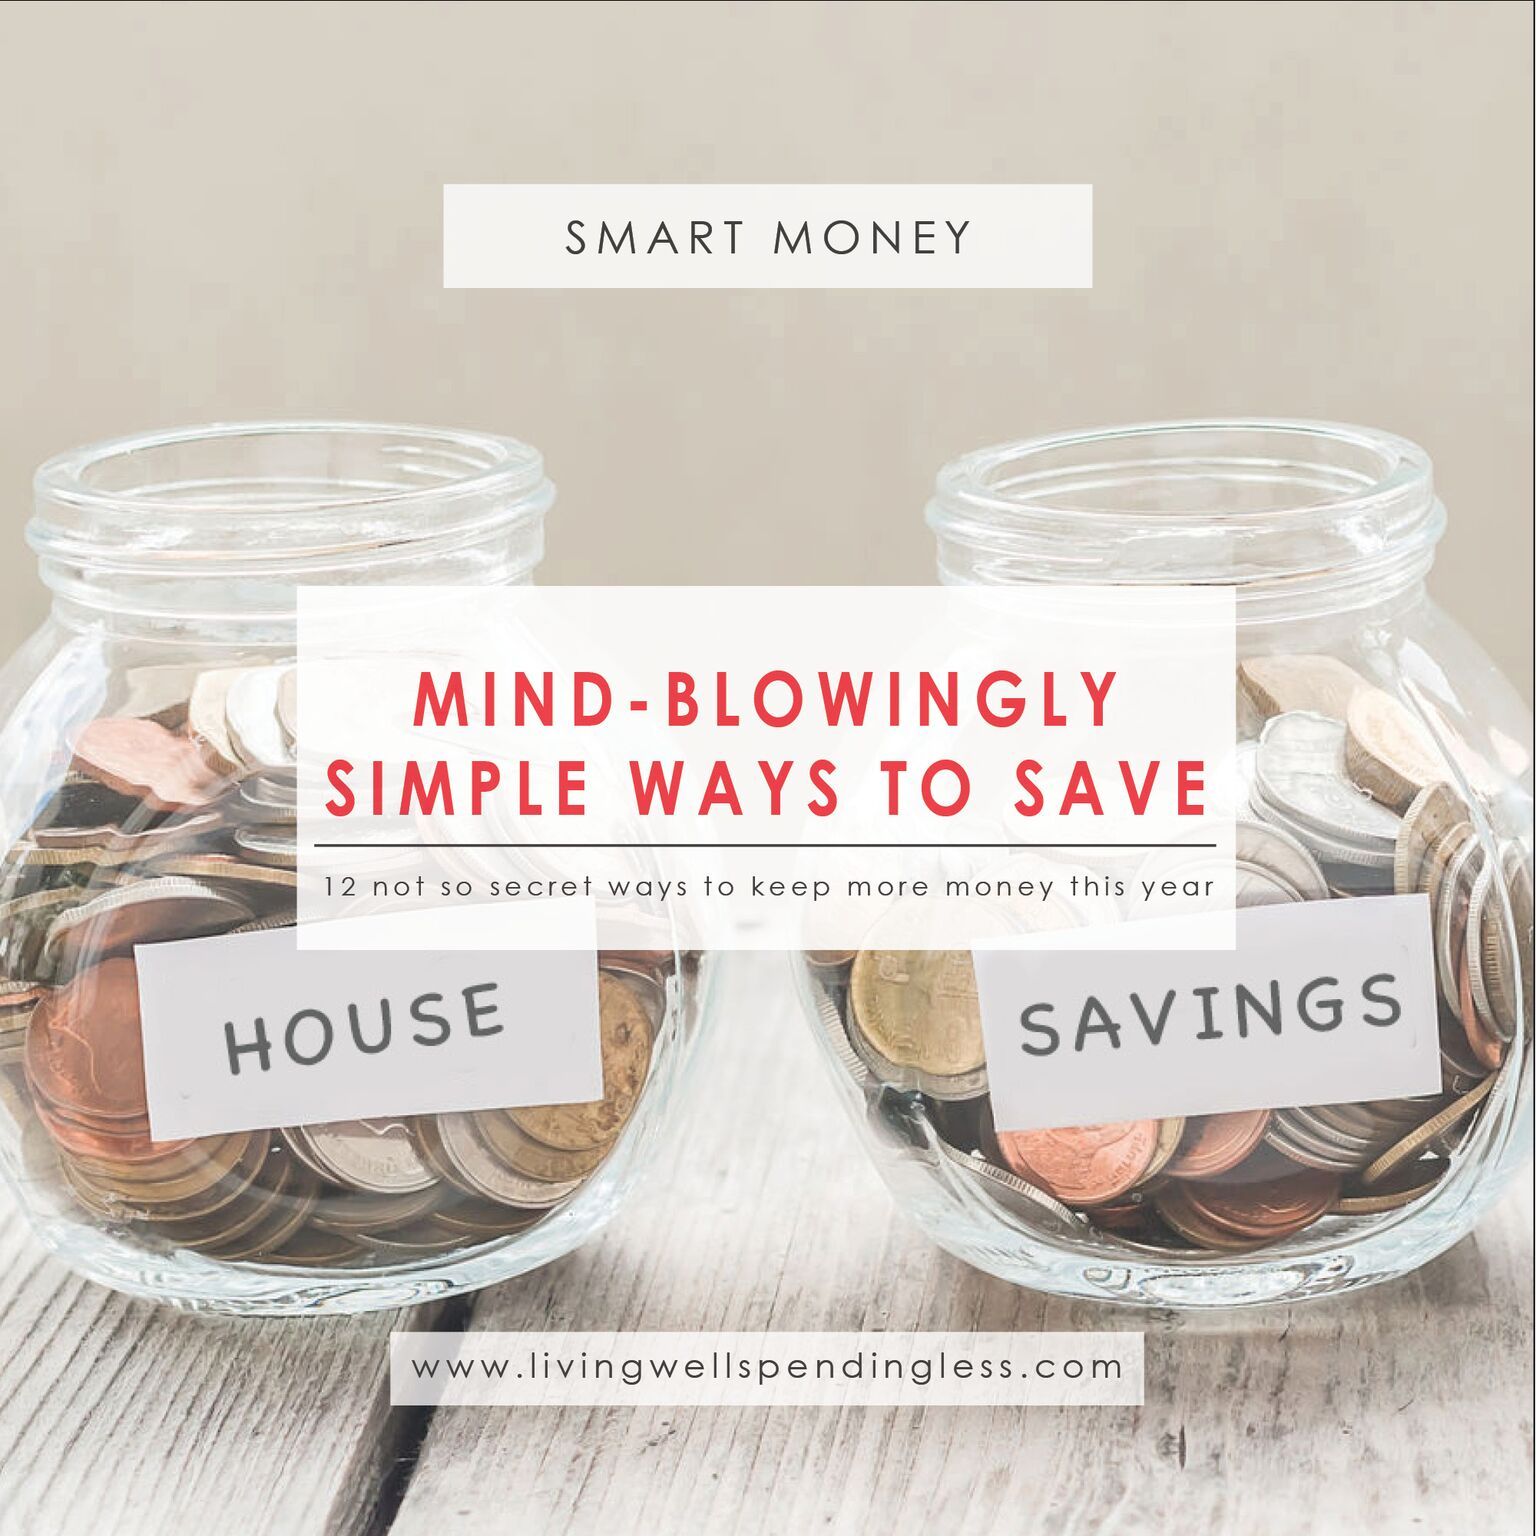 Mind-Blowingly Simple Ways to Save⎢Easy Tricks to Save Money on Everyday Items⎢Frugal Living⎢Financial Freedom⎢Budget Friendly Tips⎢Everyday Savings